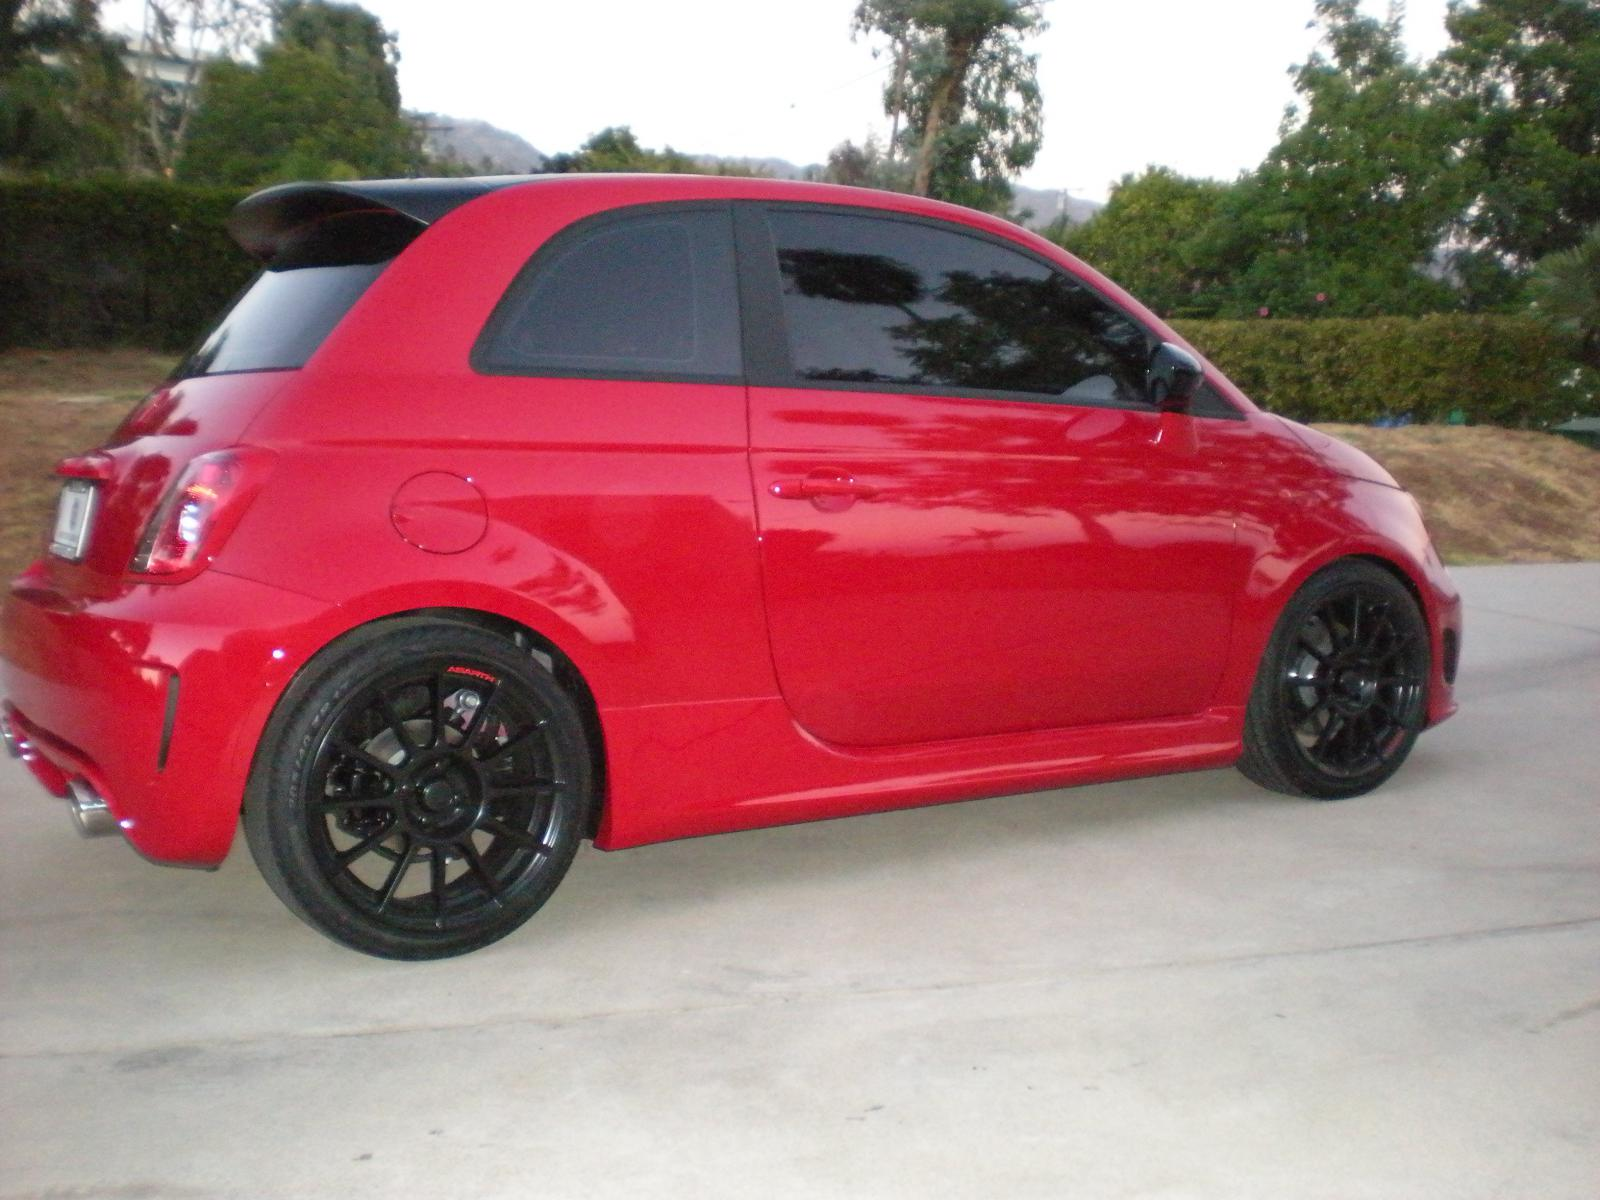 fs 2012 abarth rosso ext int red black leather seats. Black Bedroom Furniture Sets. Home Design Ideas